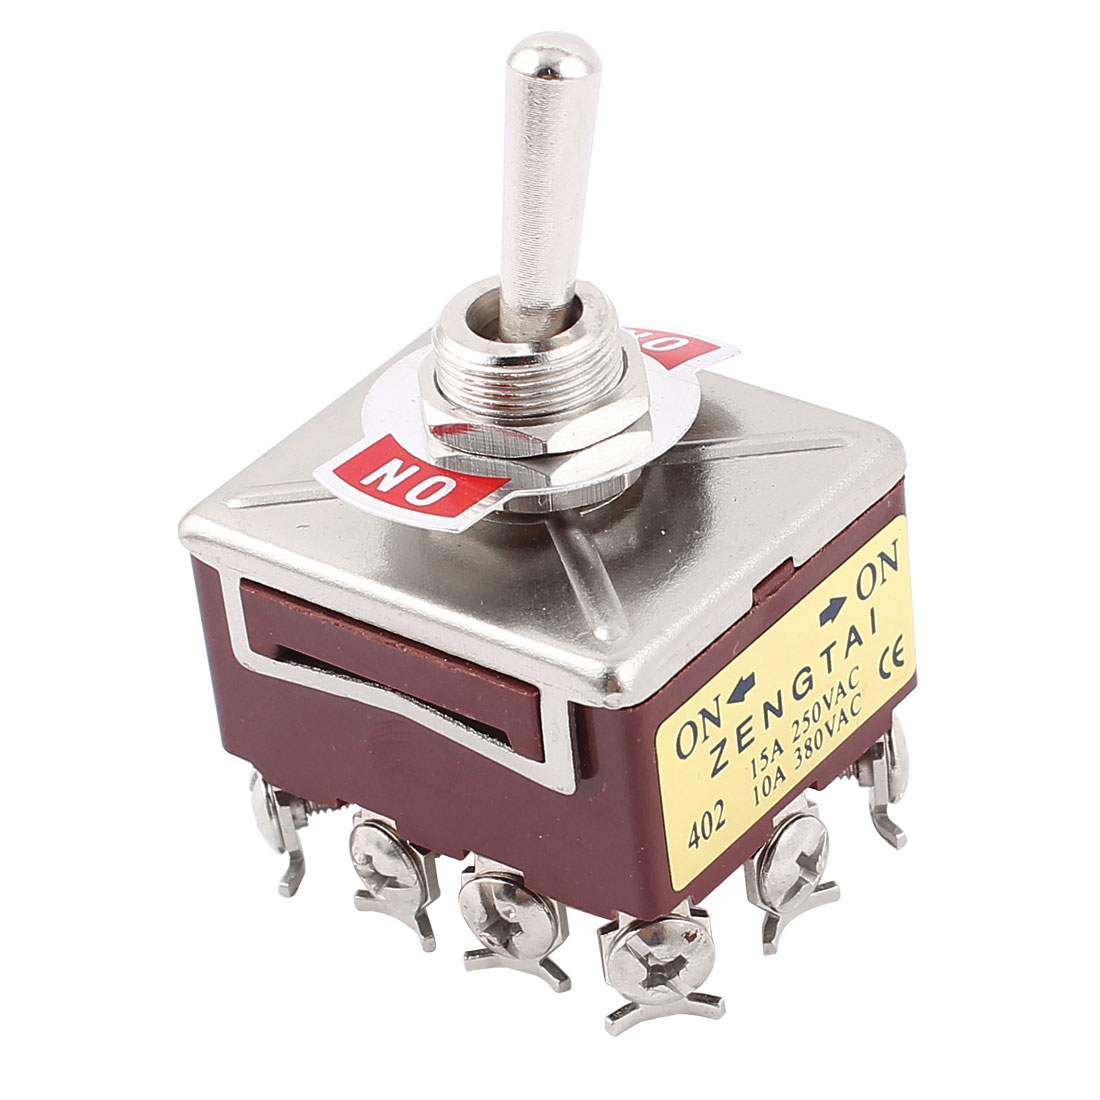 AC 15A/250V 10A/380V 2 Way On/On 4 Pole Double Throw 4PDT Toggle Switch